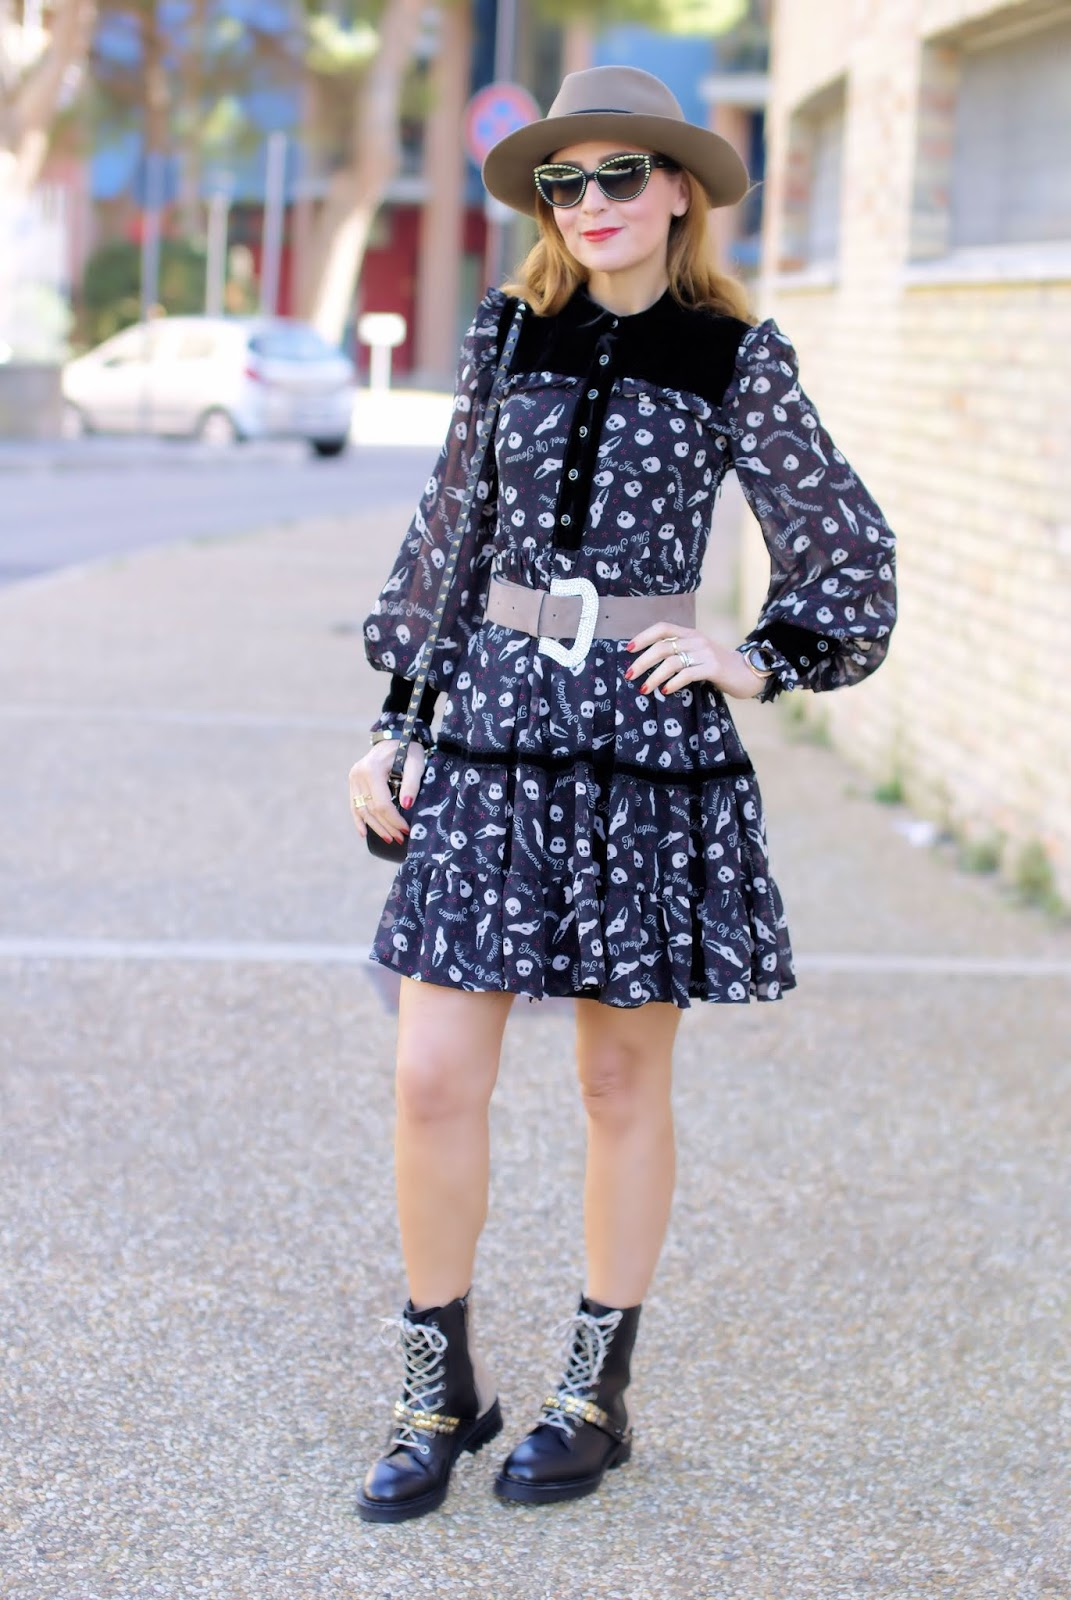 Best Halloween outfit costume on Fashion and Cookies fashion blog, fashion blogger style